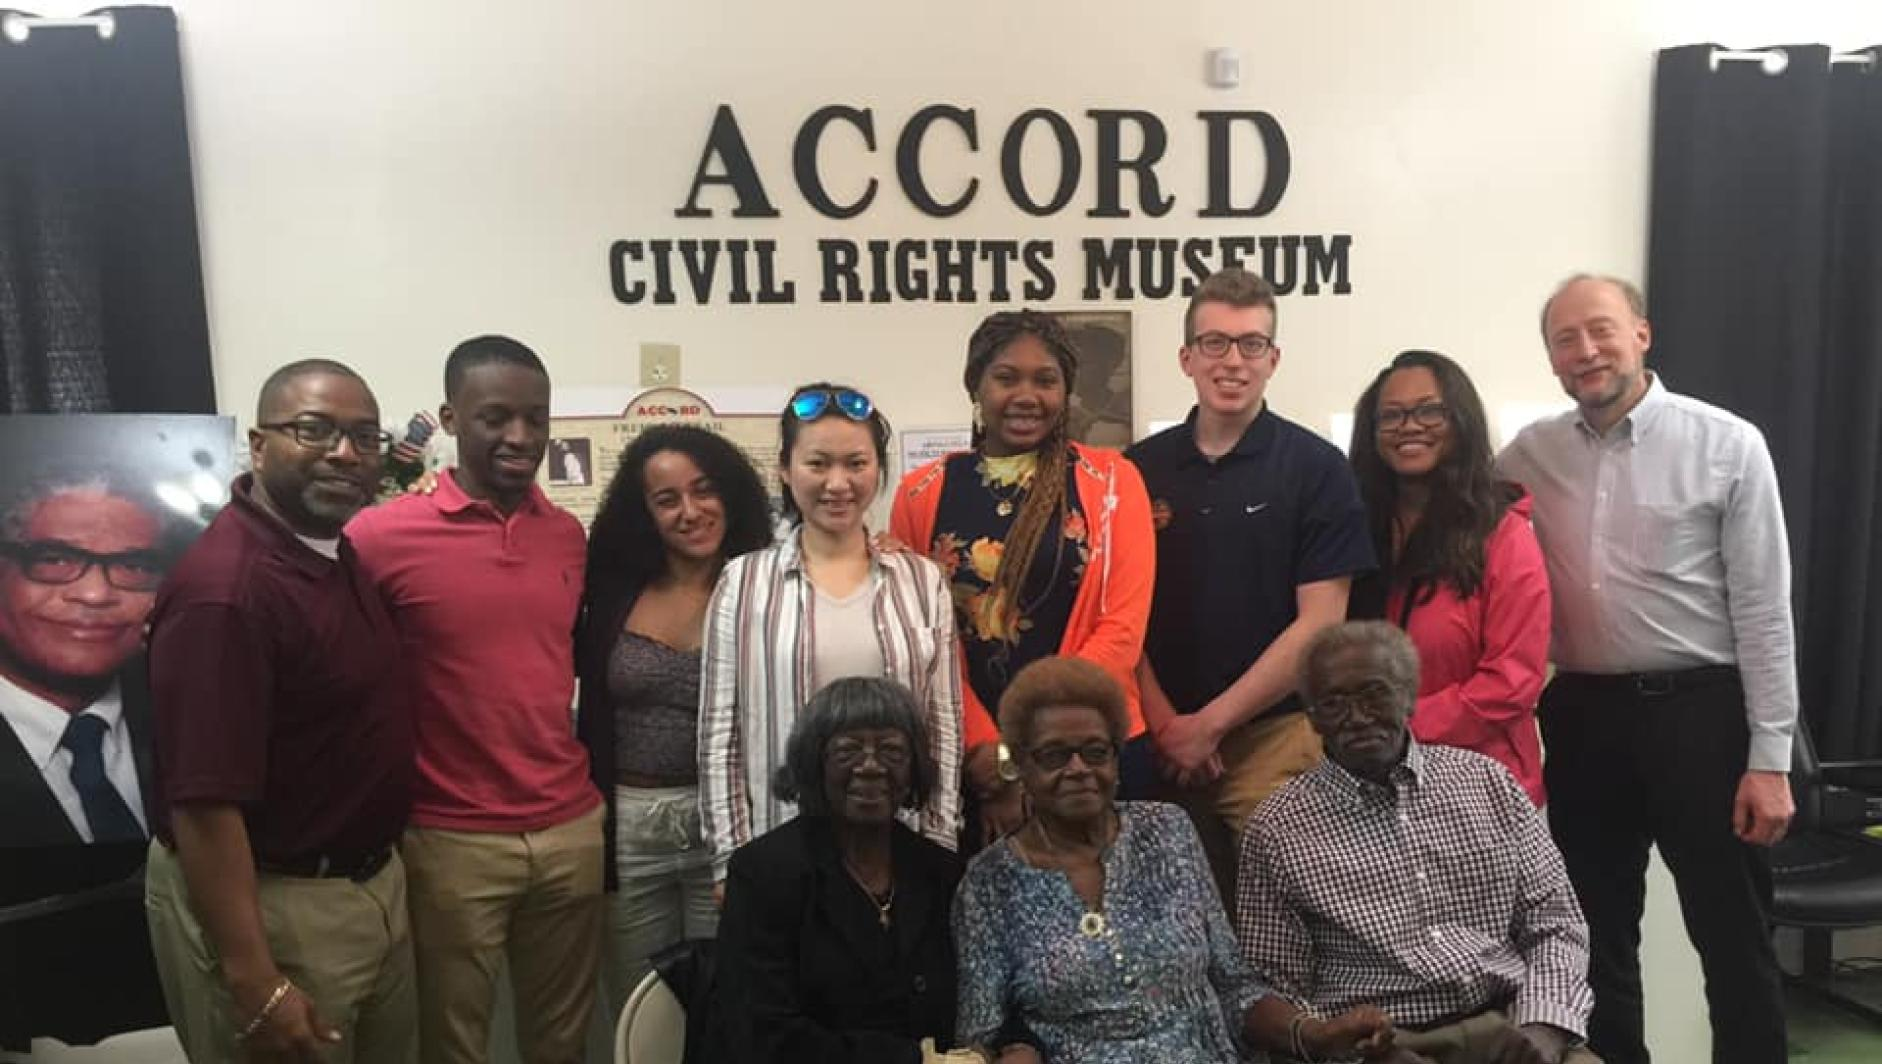 Calvin Hill, Marty Dobrow, and students at the ACCORD Civil Rights Museum.